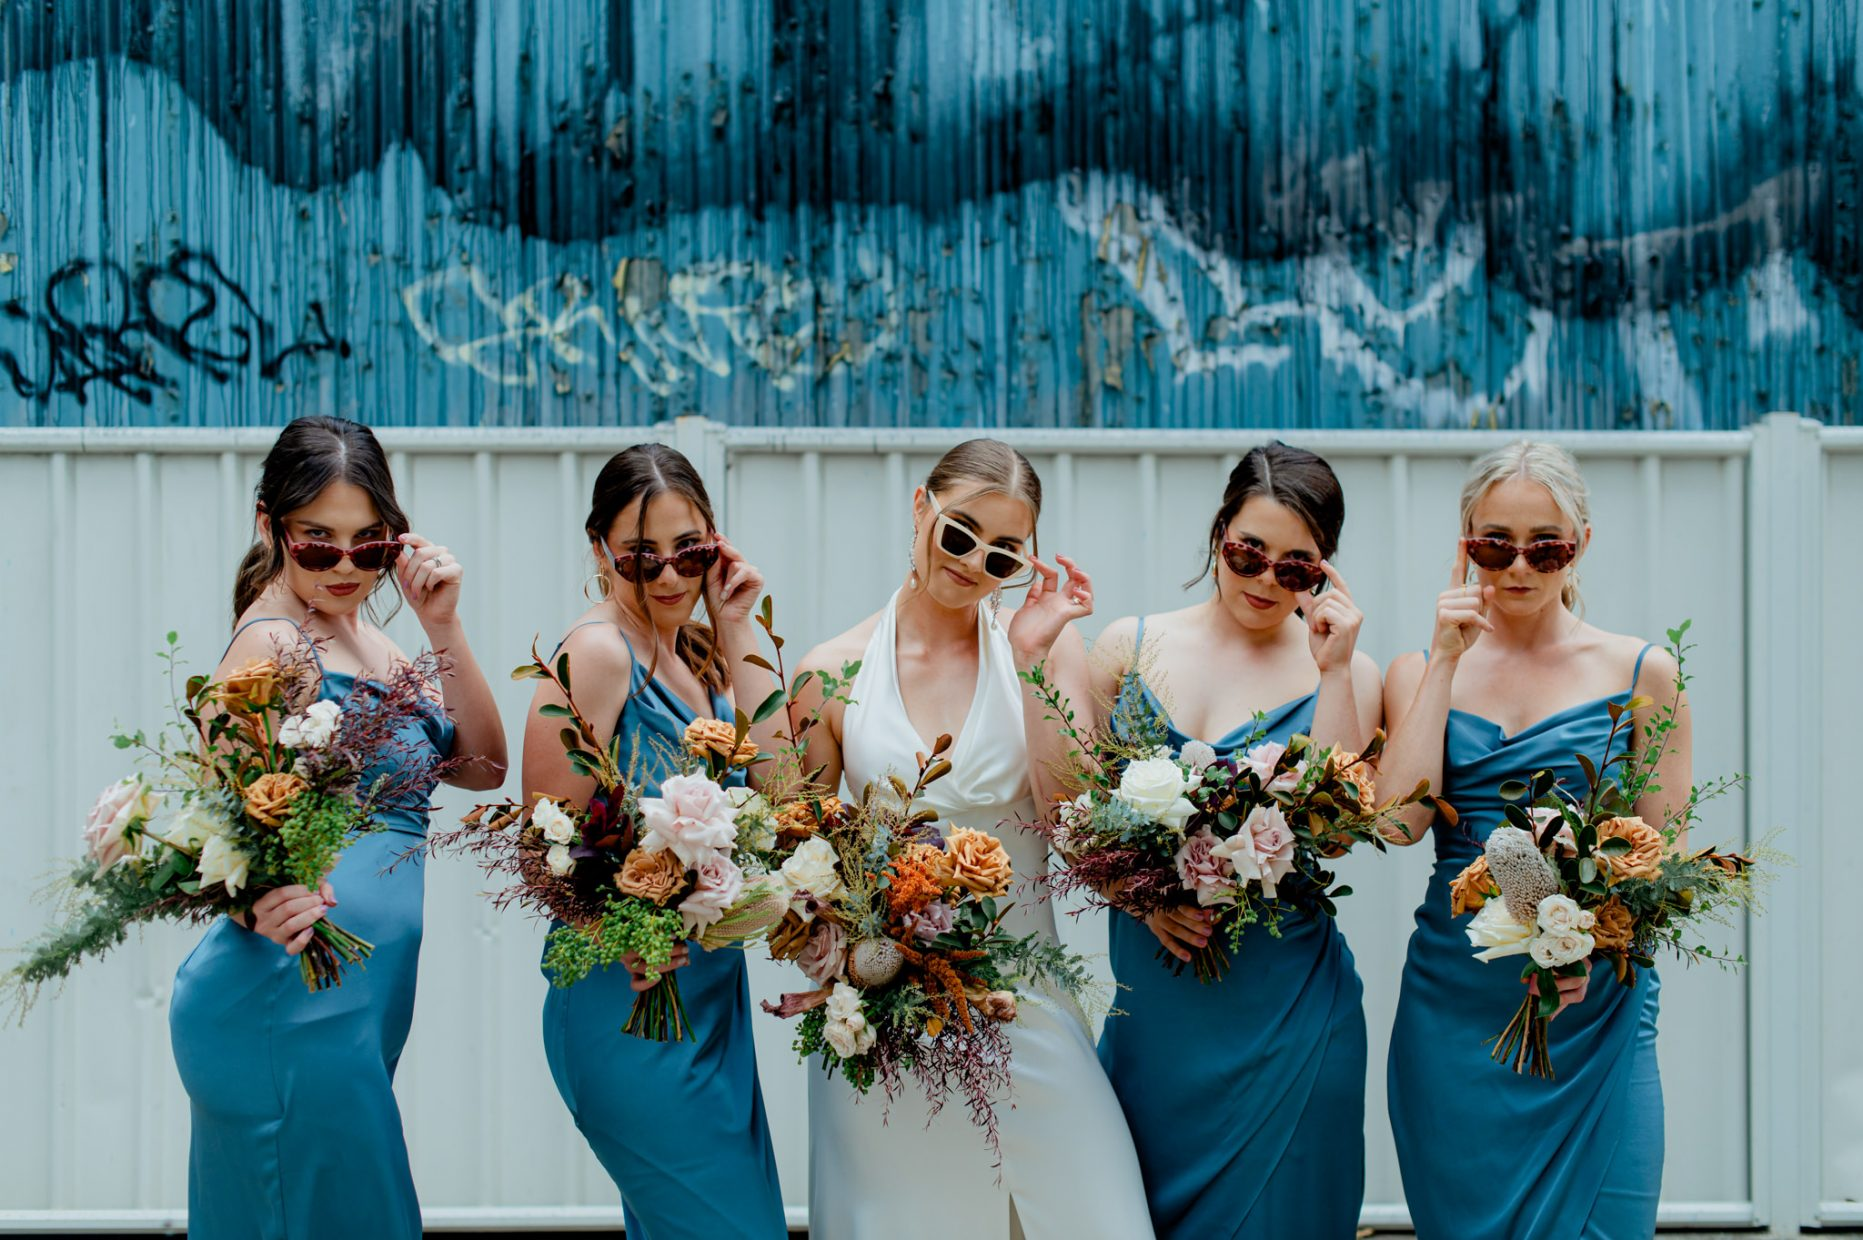 Bride and bridesmaids in blue dresses all pose with bouquets and sunglasses